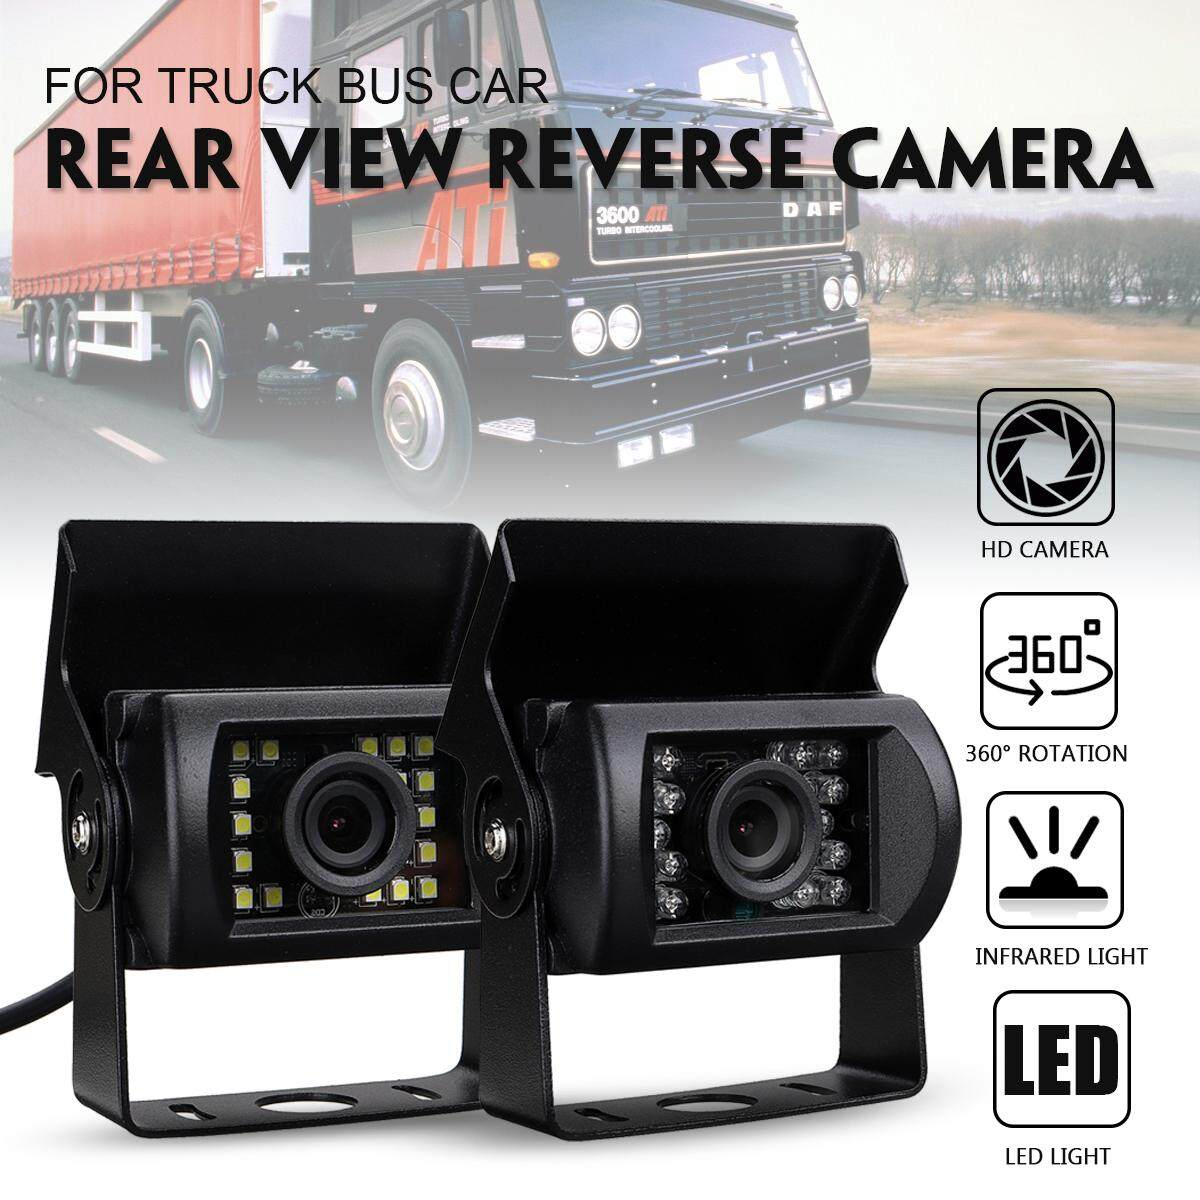 Infrared Waterproof Rear View Reverse Backup Parking Camera For Truck Bus